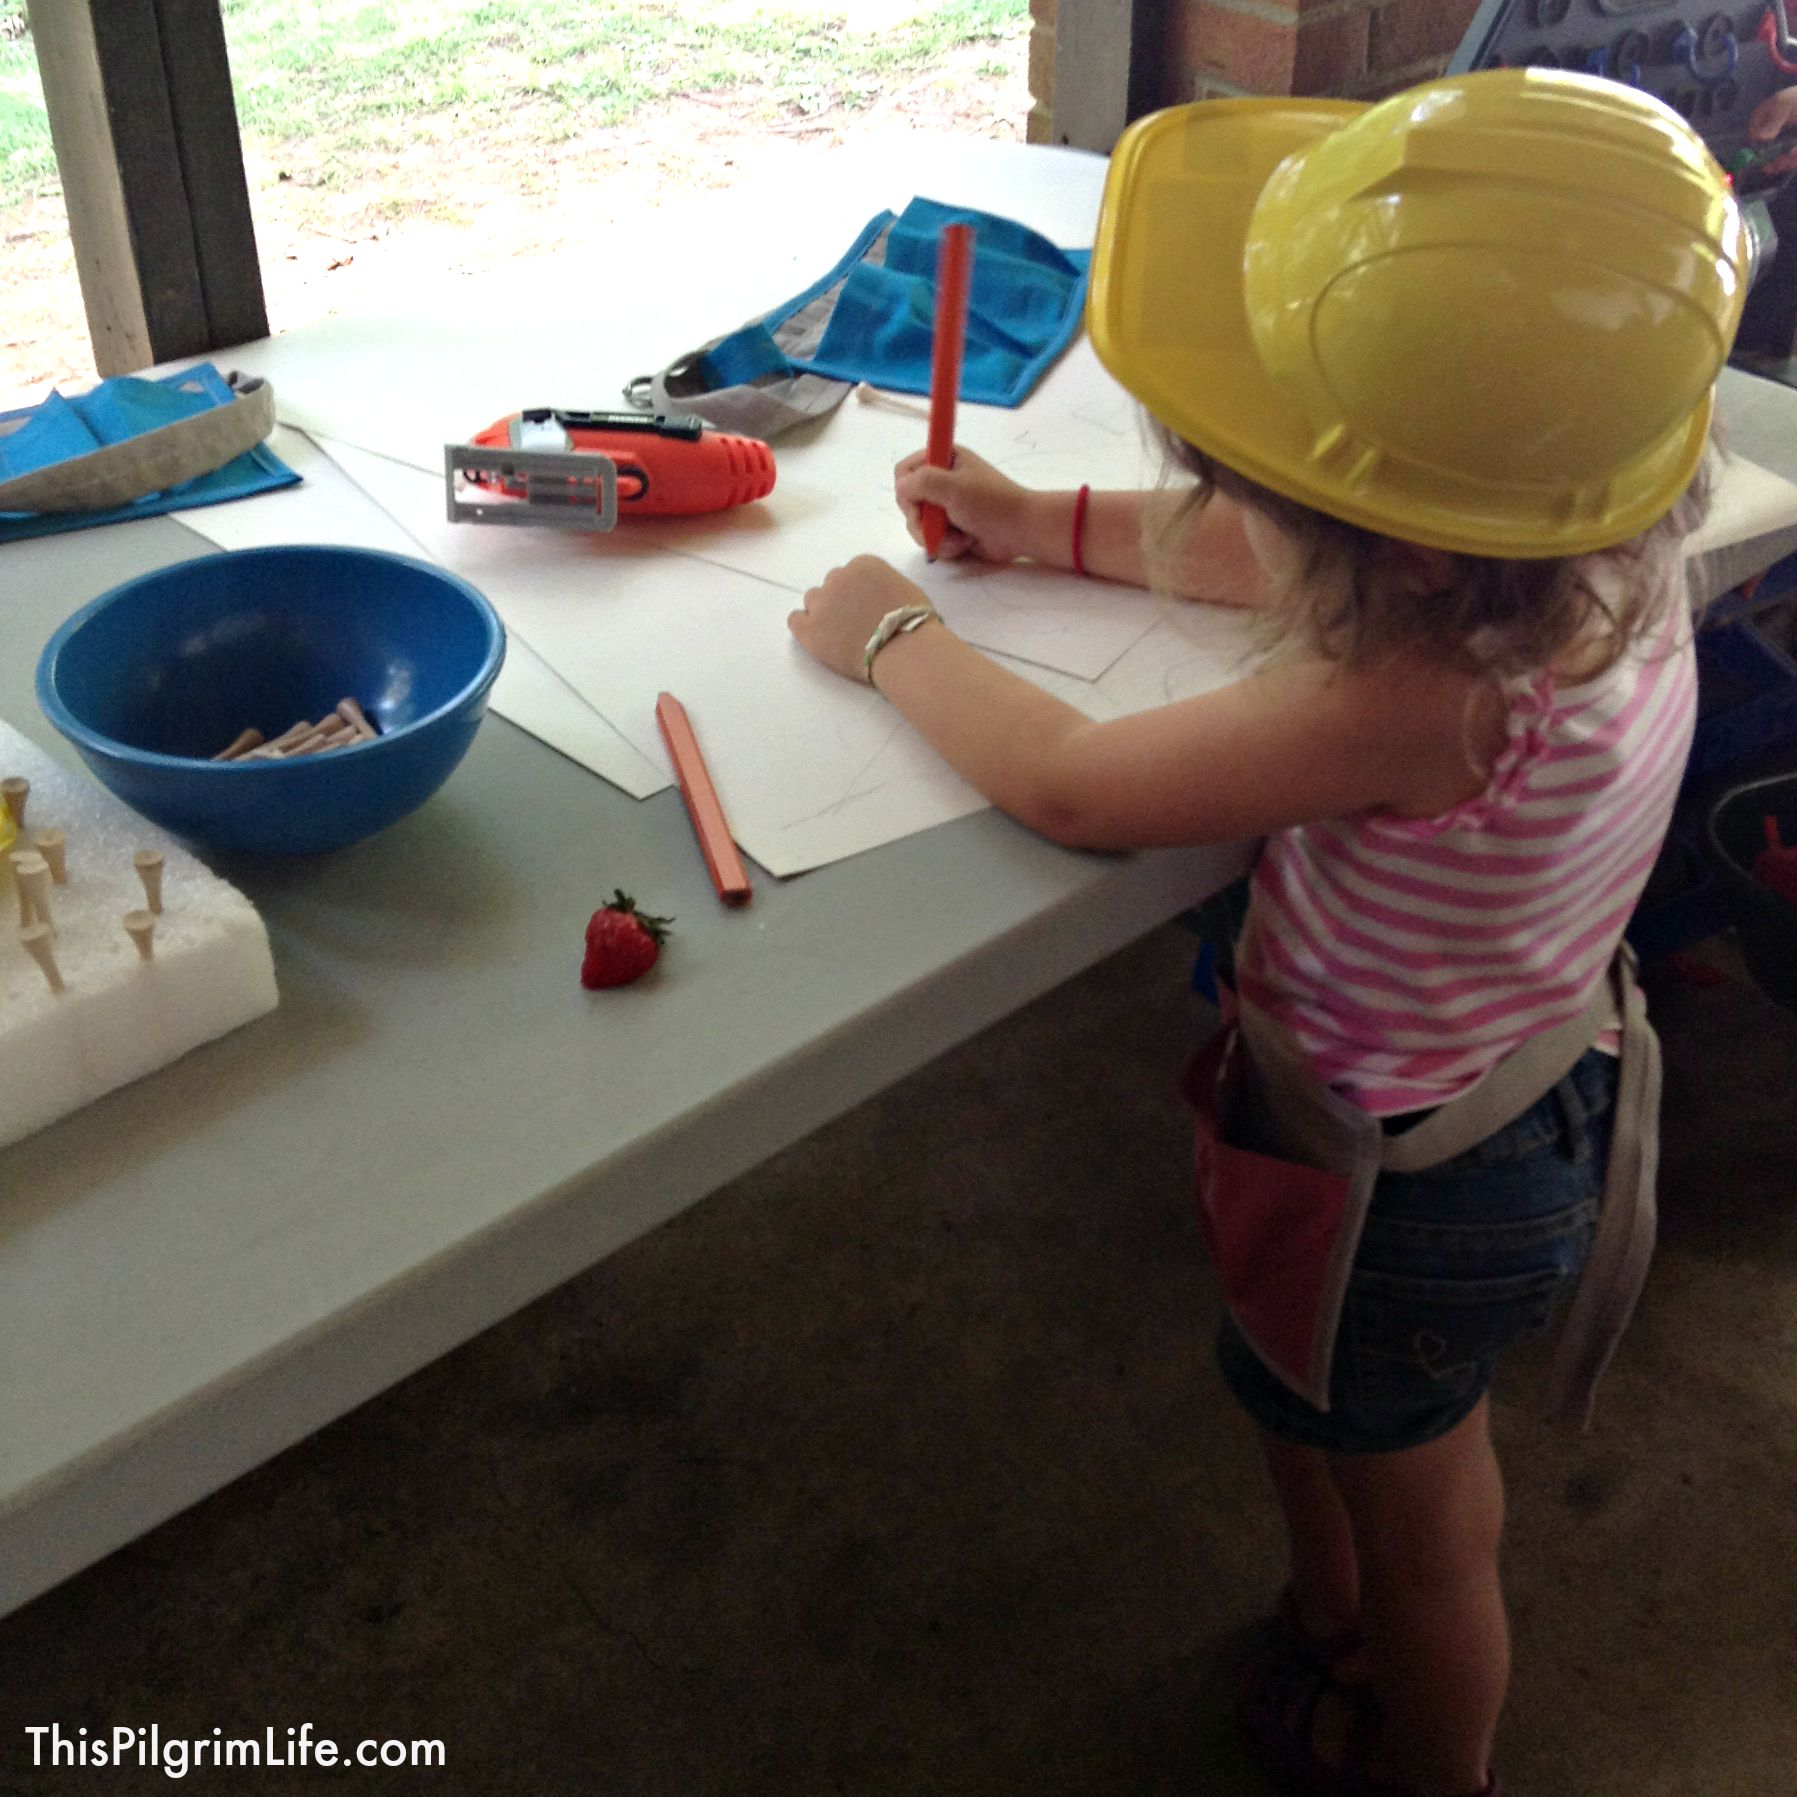 Such a fun party for any kid who loves tools and building! Hard hats, tool belts, and lots of fun activities!